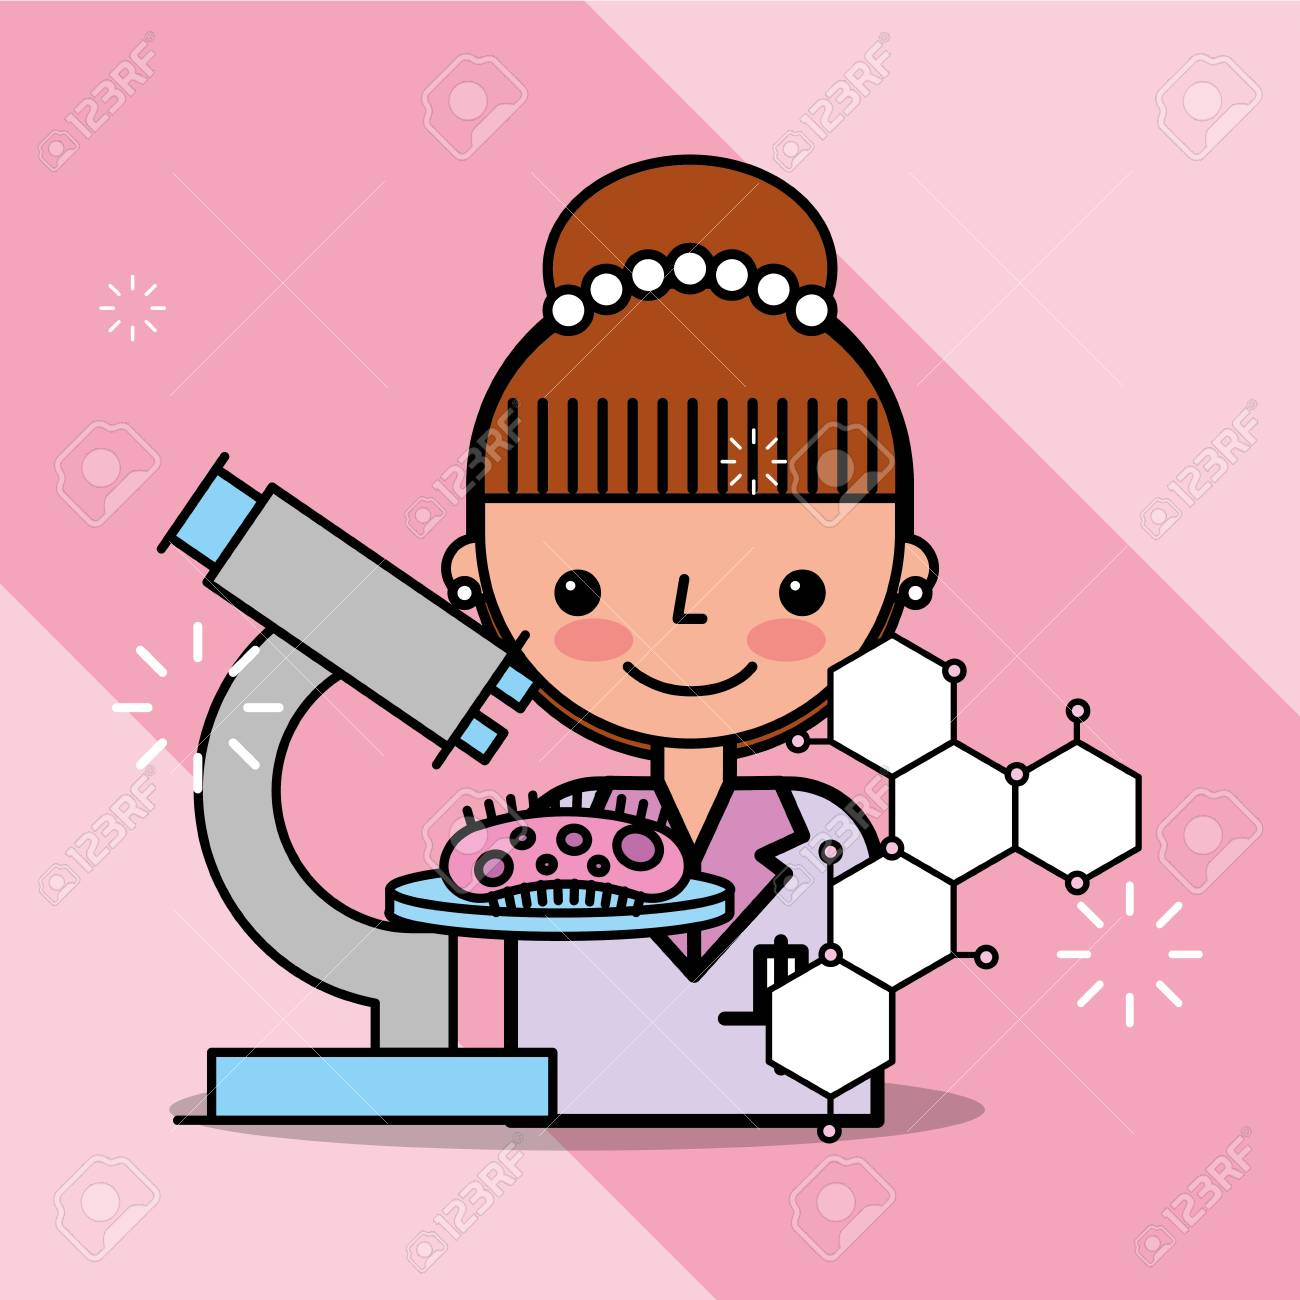 scientist woman cartoon analysismicroscope bacteria vector illustration royalty free cliparts vectors and stock illustration image 101047890 scientist woman cartoon analysismicroscope bacteria vector illustration